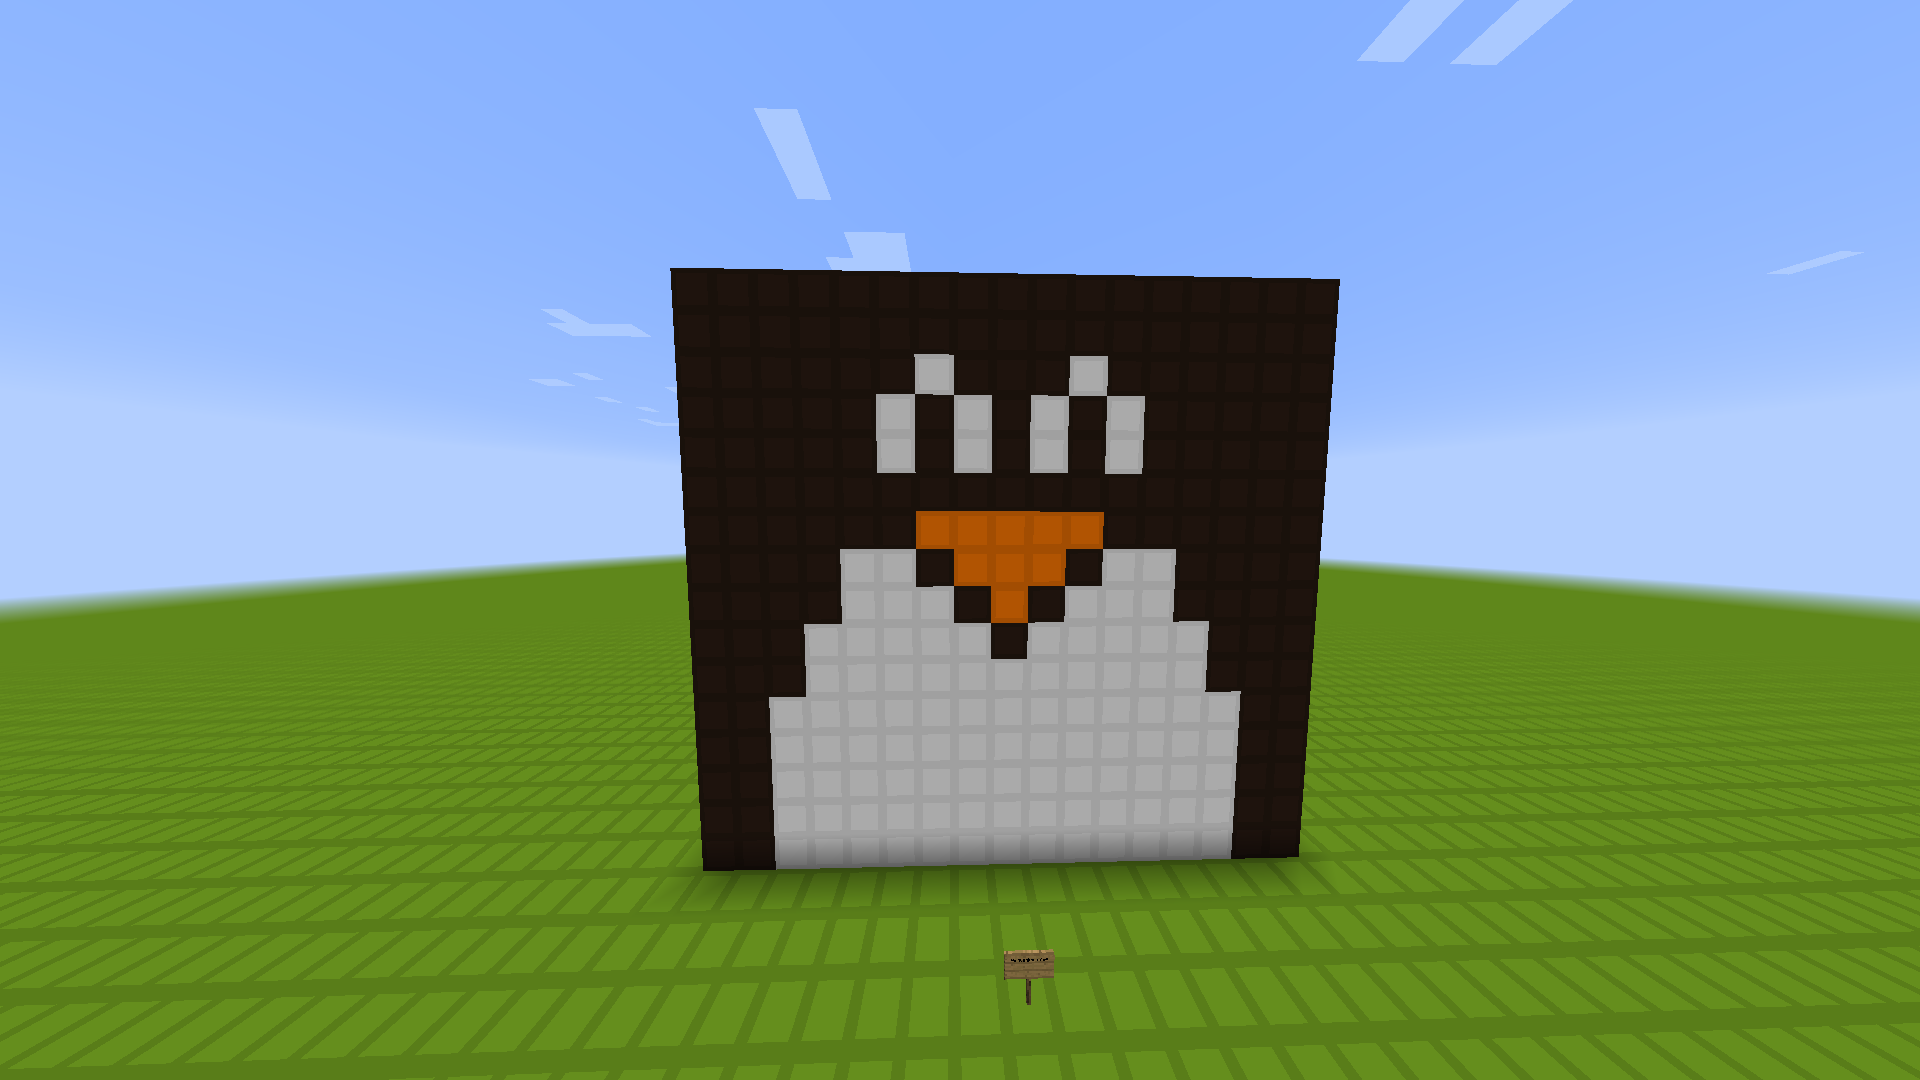 Minecraft building of my profile picture.